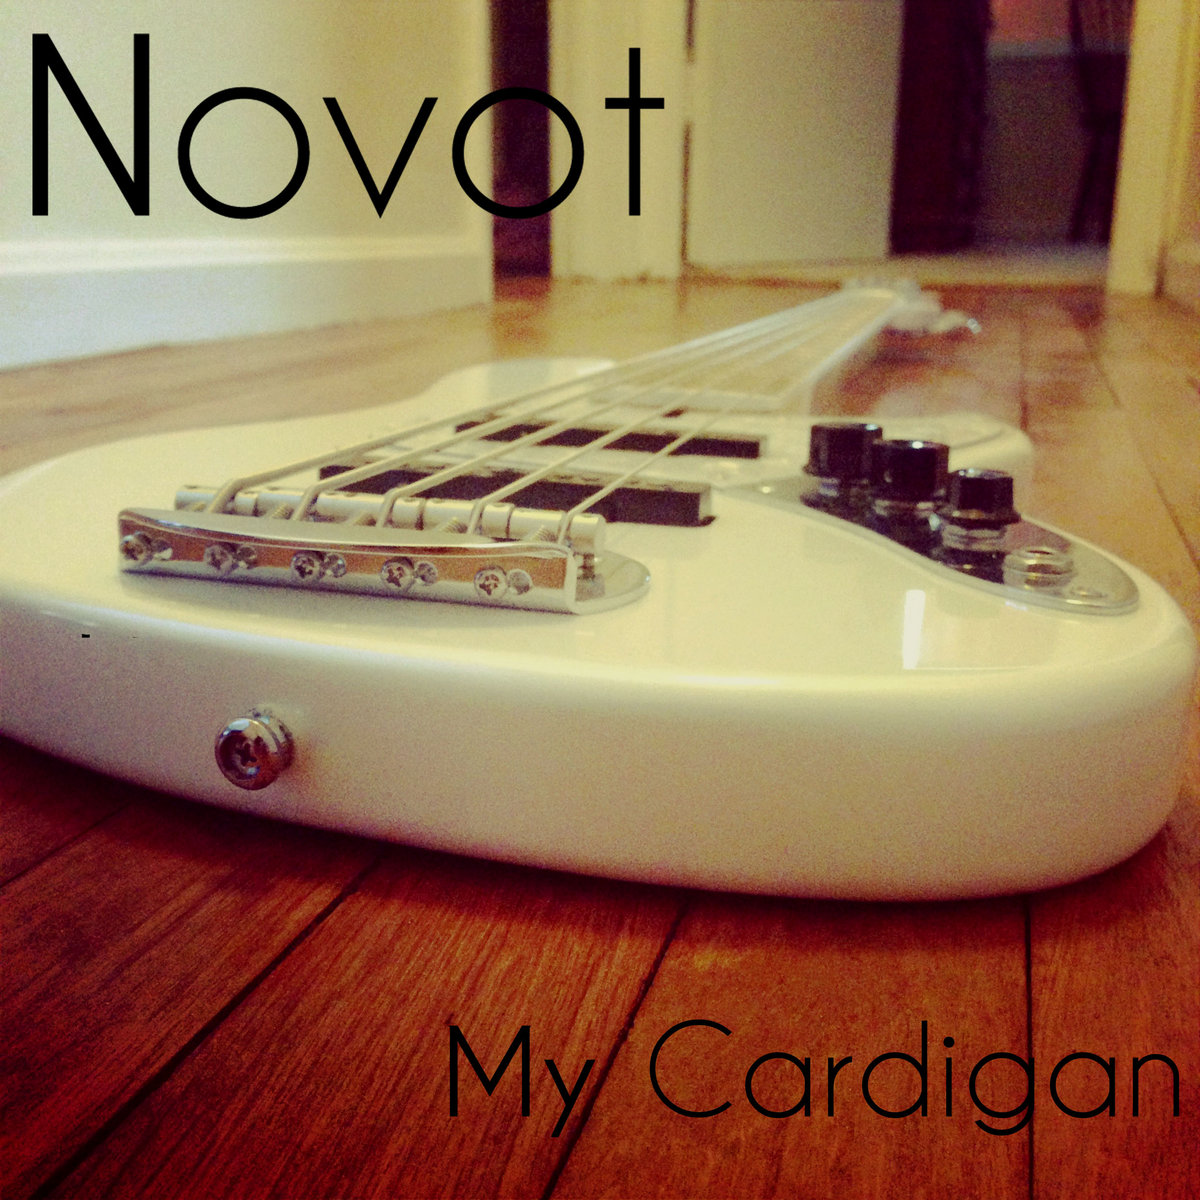 My Cardigan by Novot